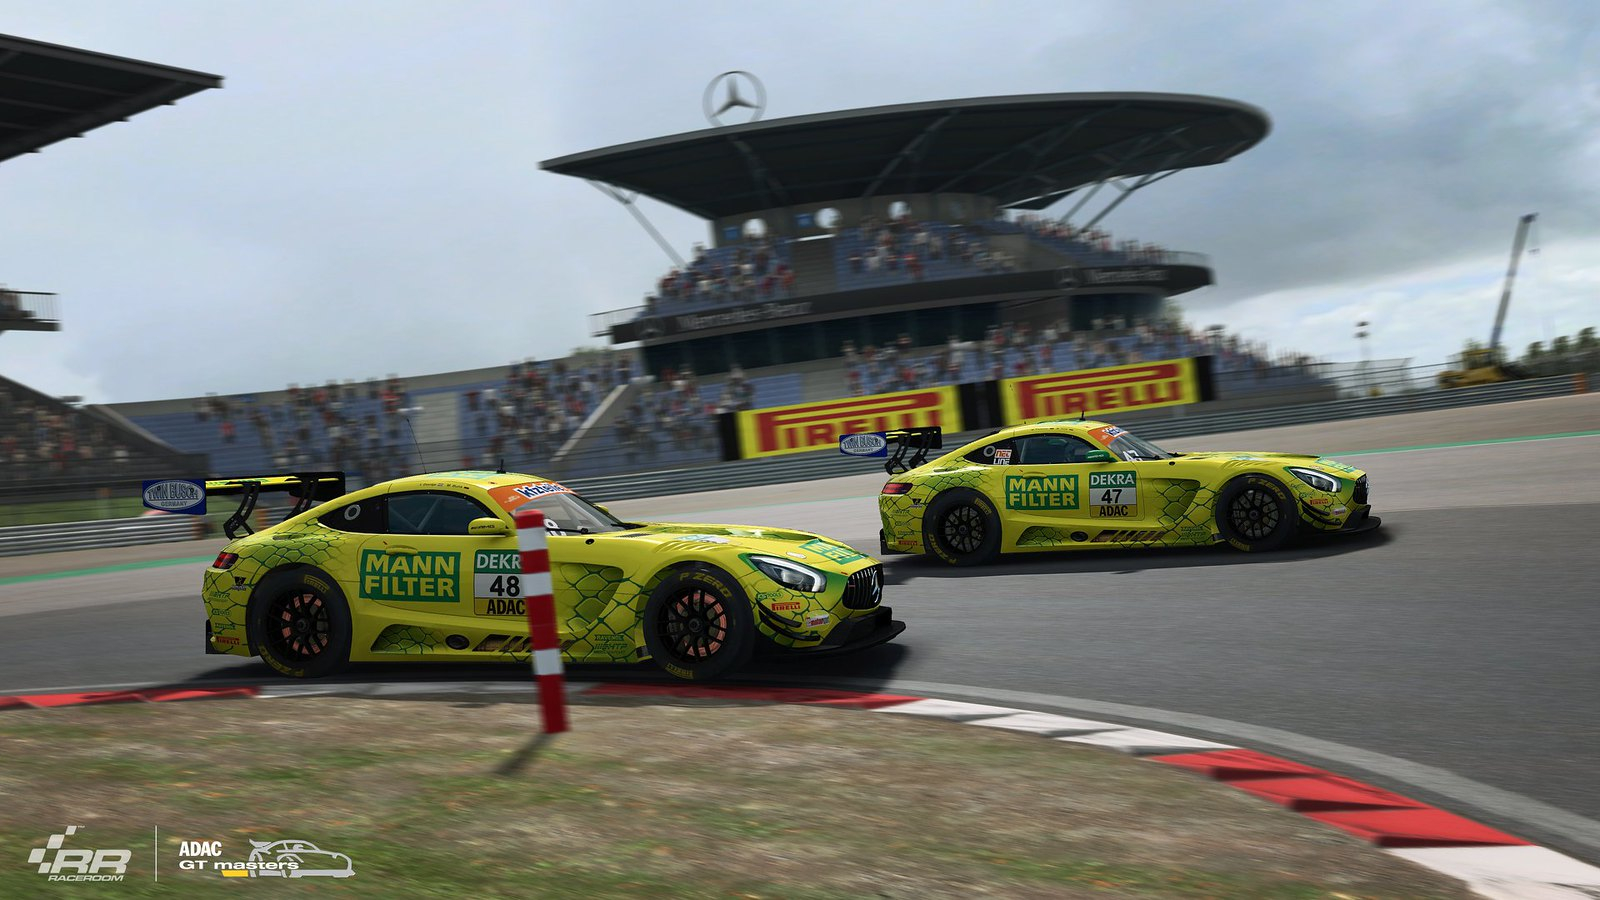 3 RaceRooom Mercedes-AMG teams of ADAC GT Masters 2018